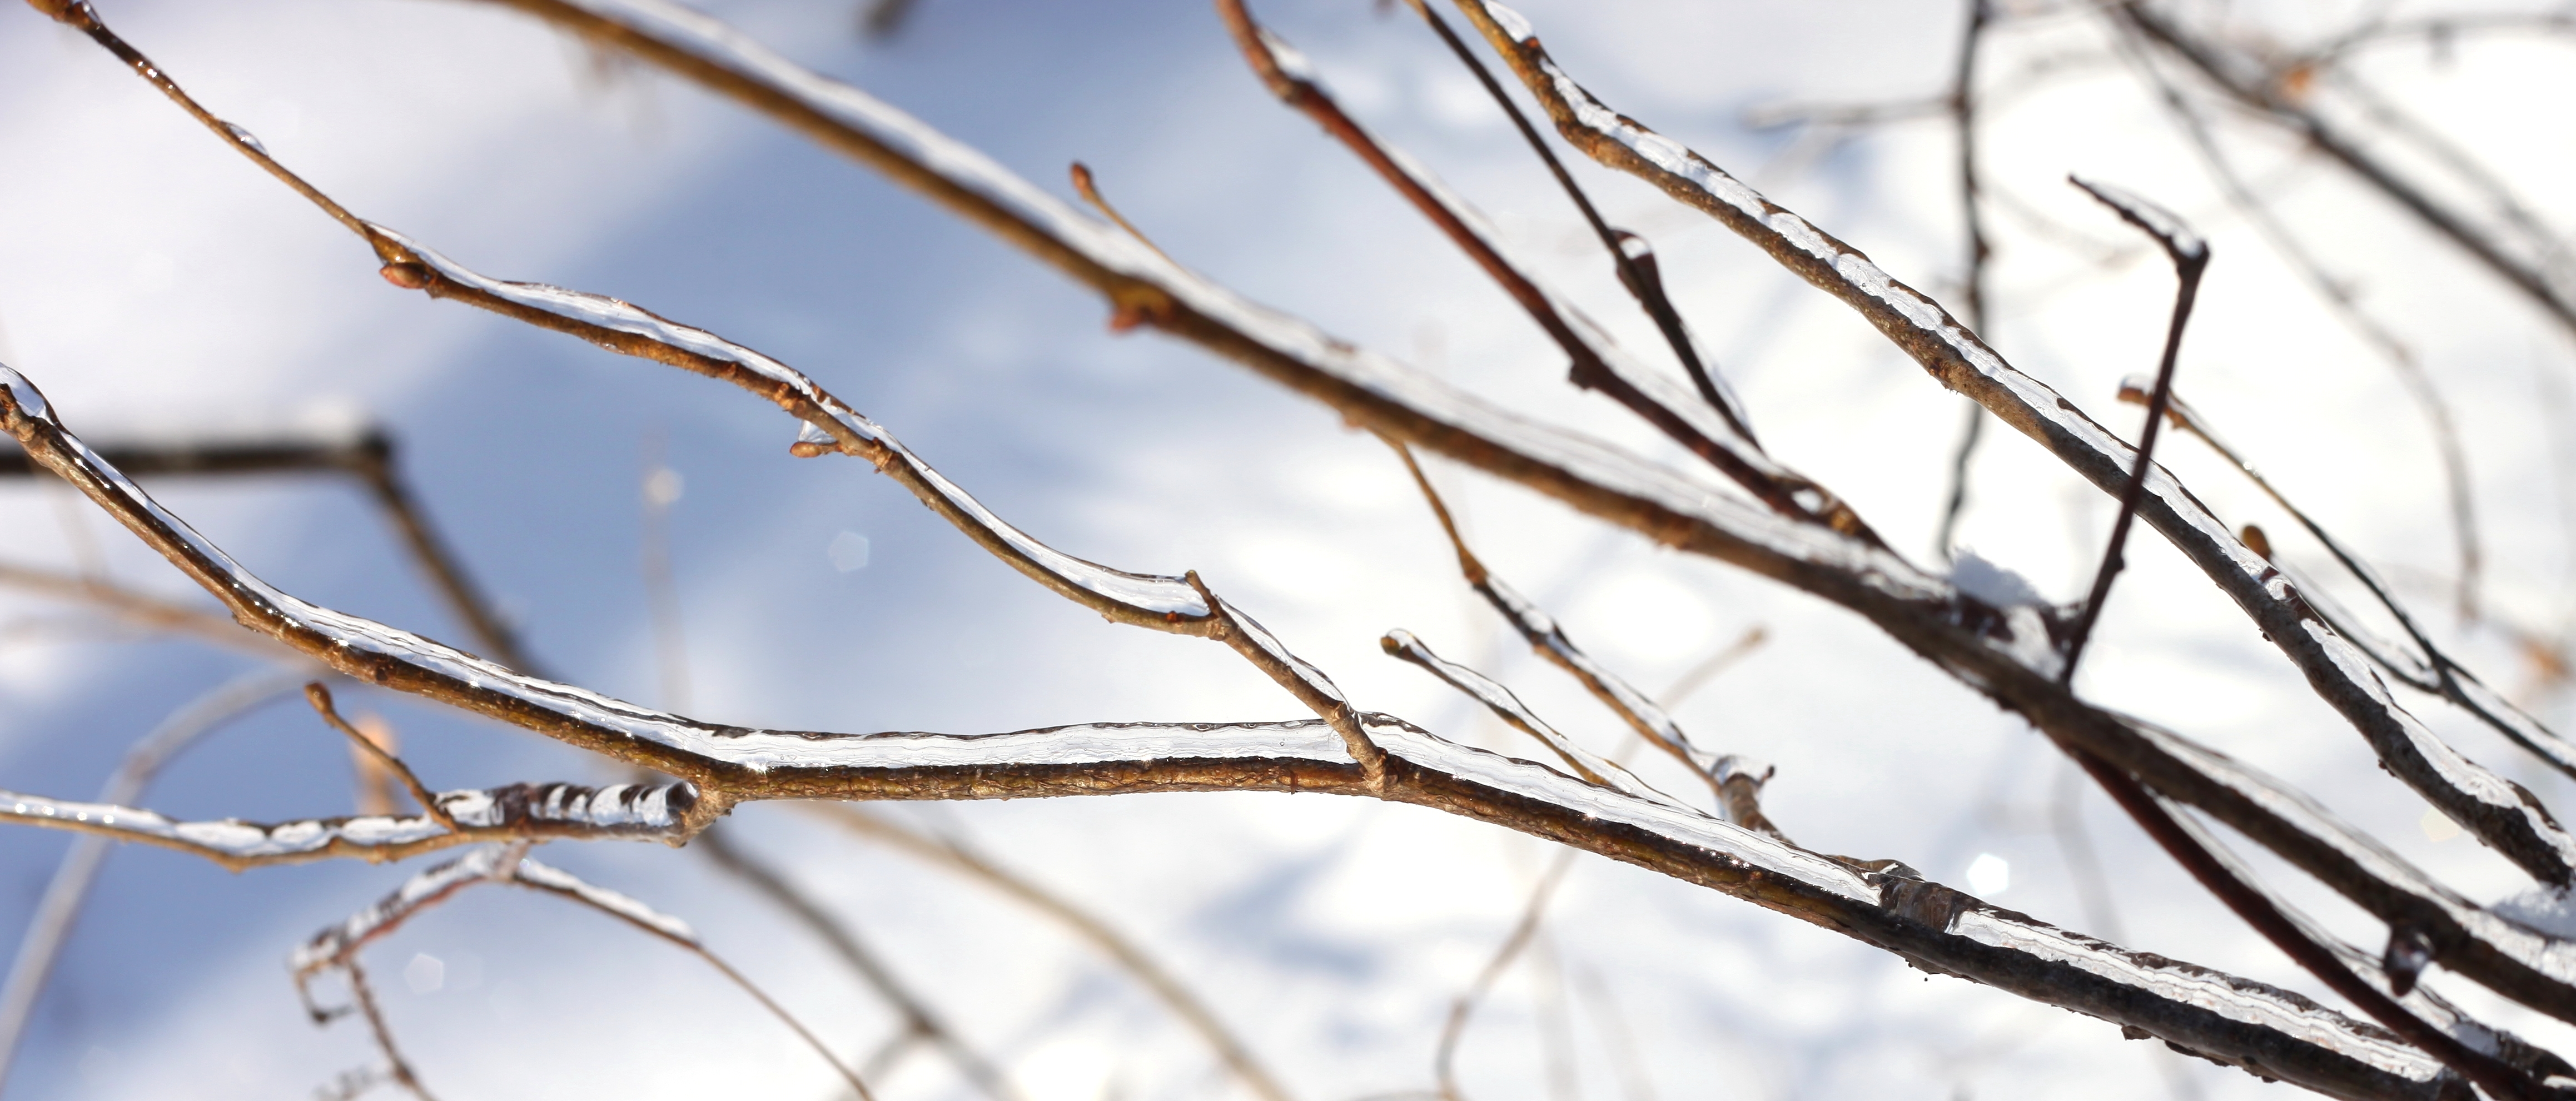 branches covered with ice, photo 1